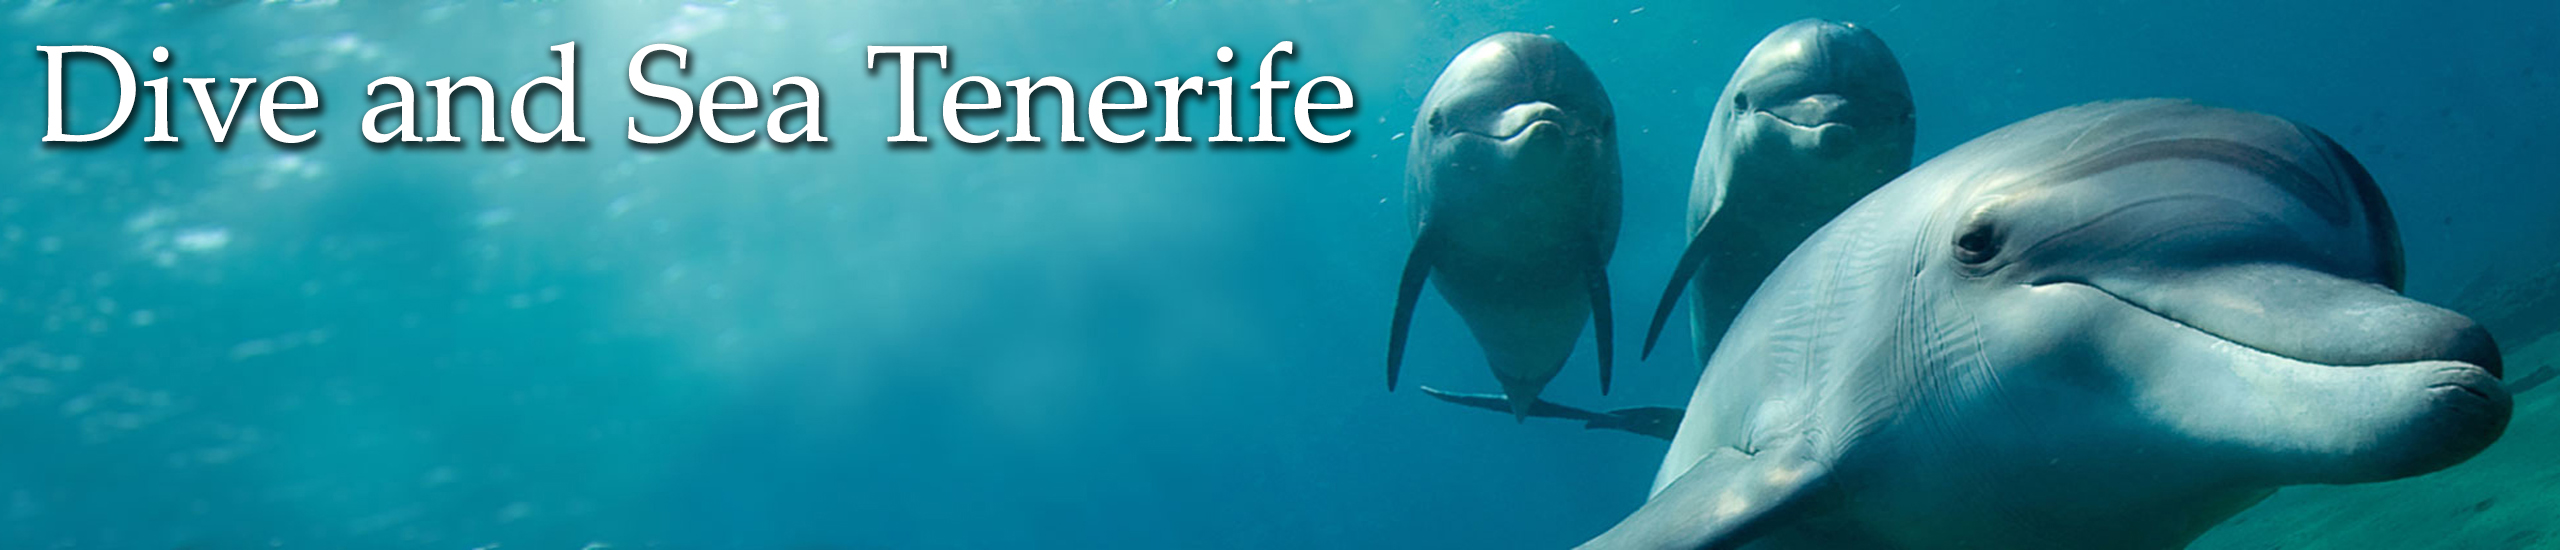 Diving in Tenerife-Dive-and-sea-tenerife-banner-dolphins